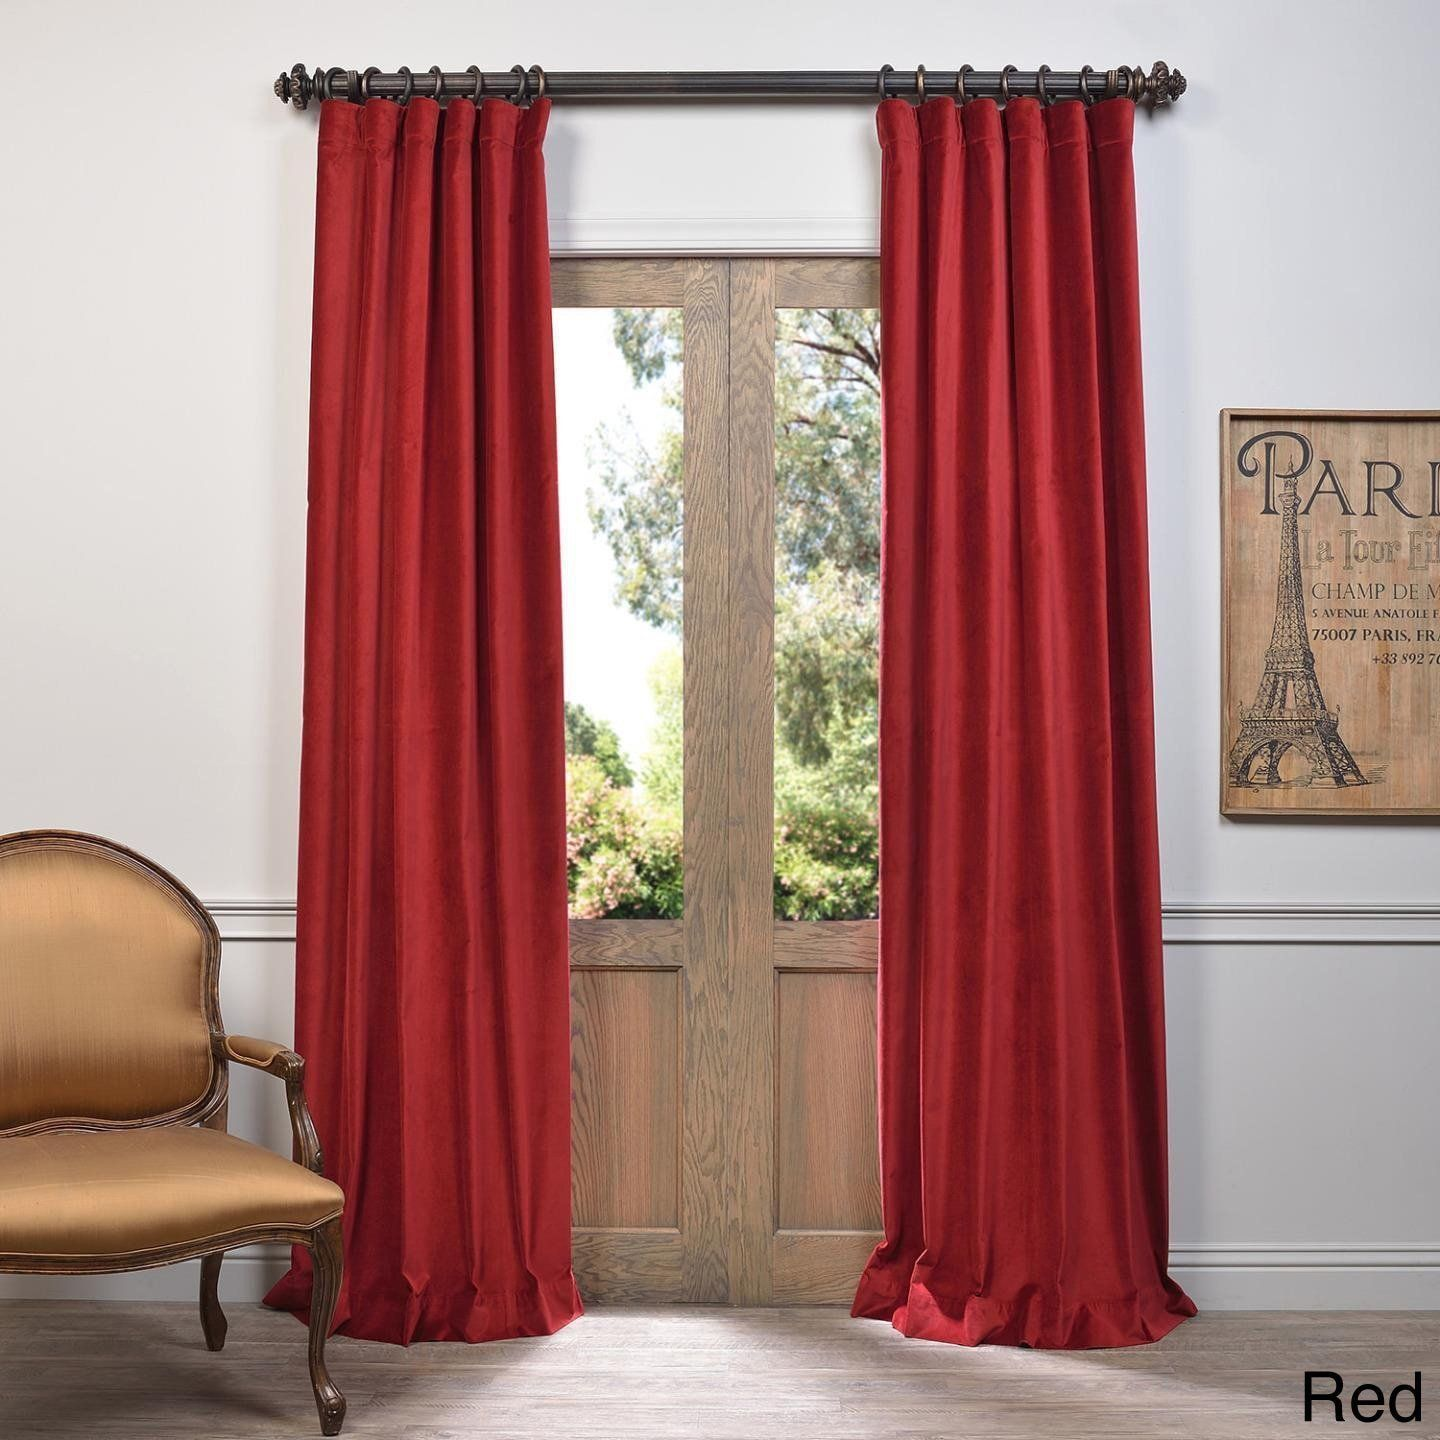 96 Inch Girls Red Color Vintage Curtain Single Panel Red Allover Pattern Window Drapes Kids Themed Energy Efficient Thermal Rod Pocket Playful Drapes Curtains Velvet Curtains Vintage Curtains